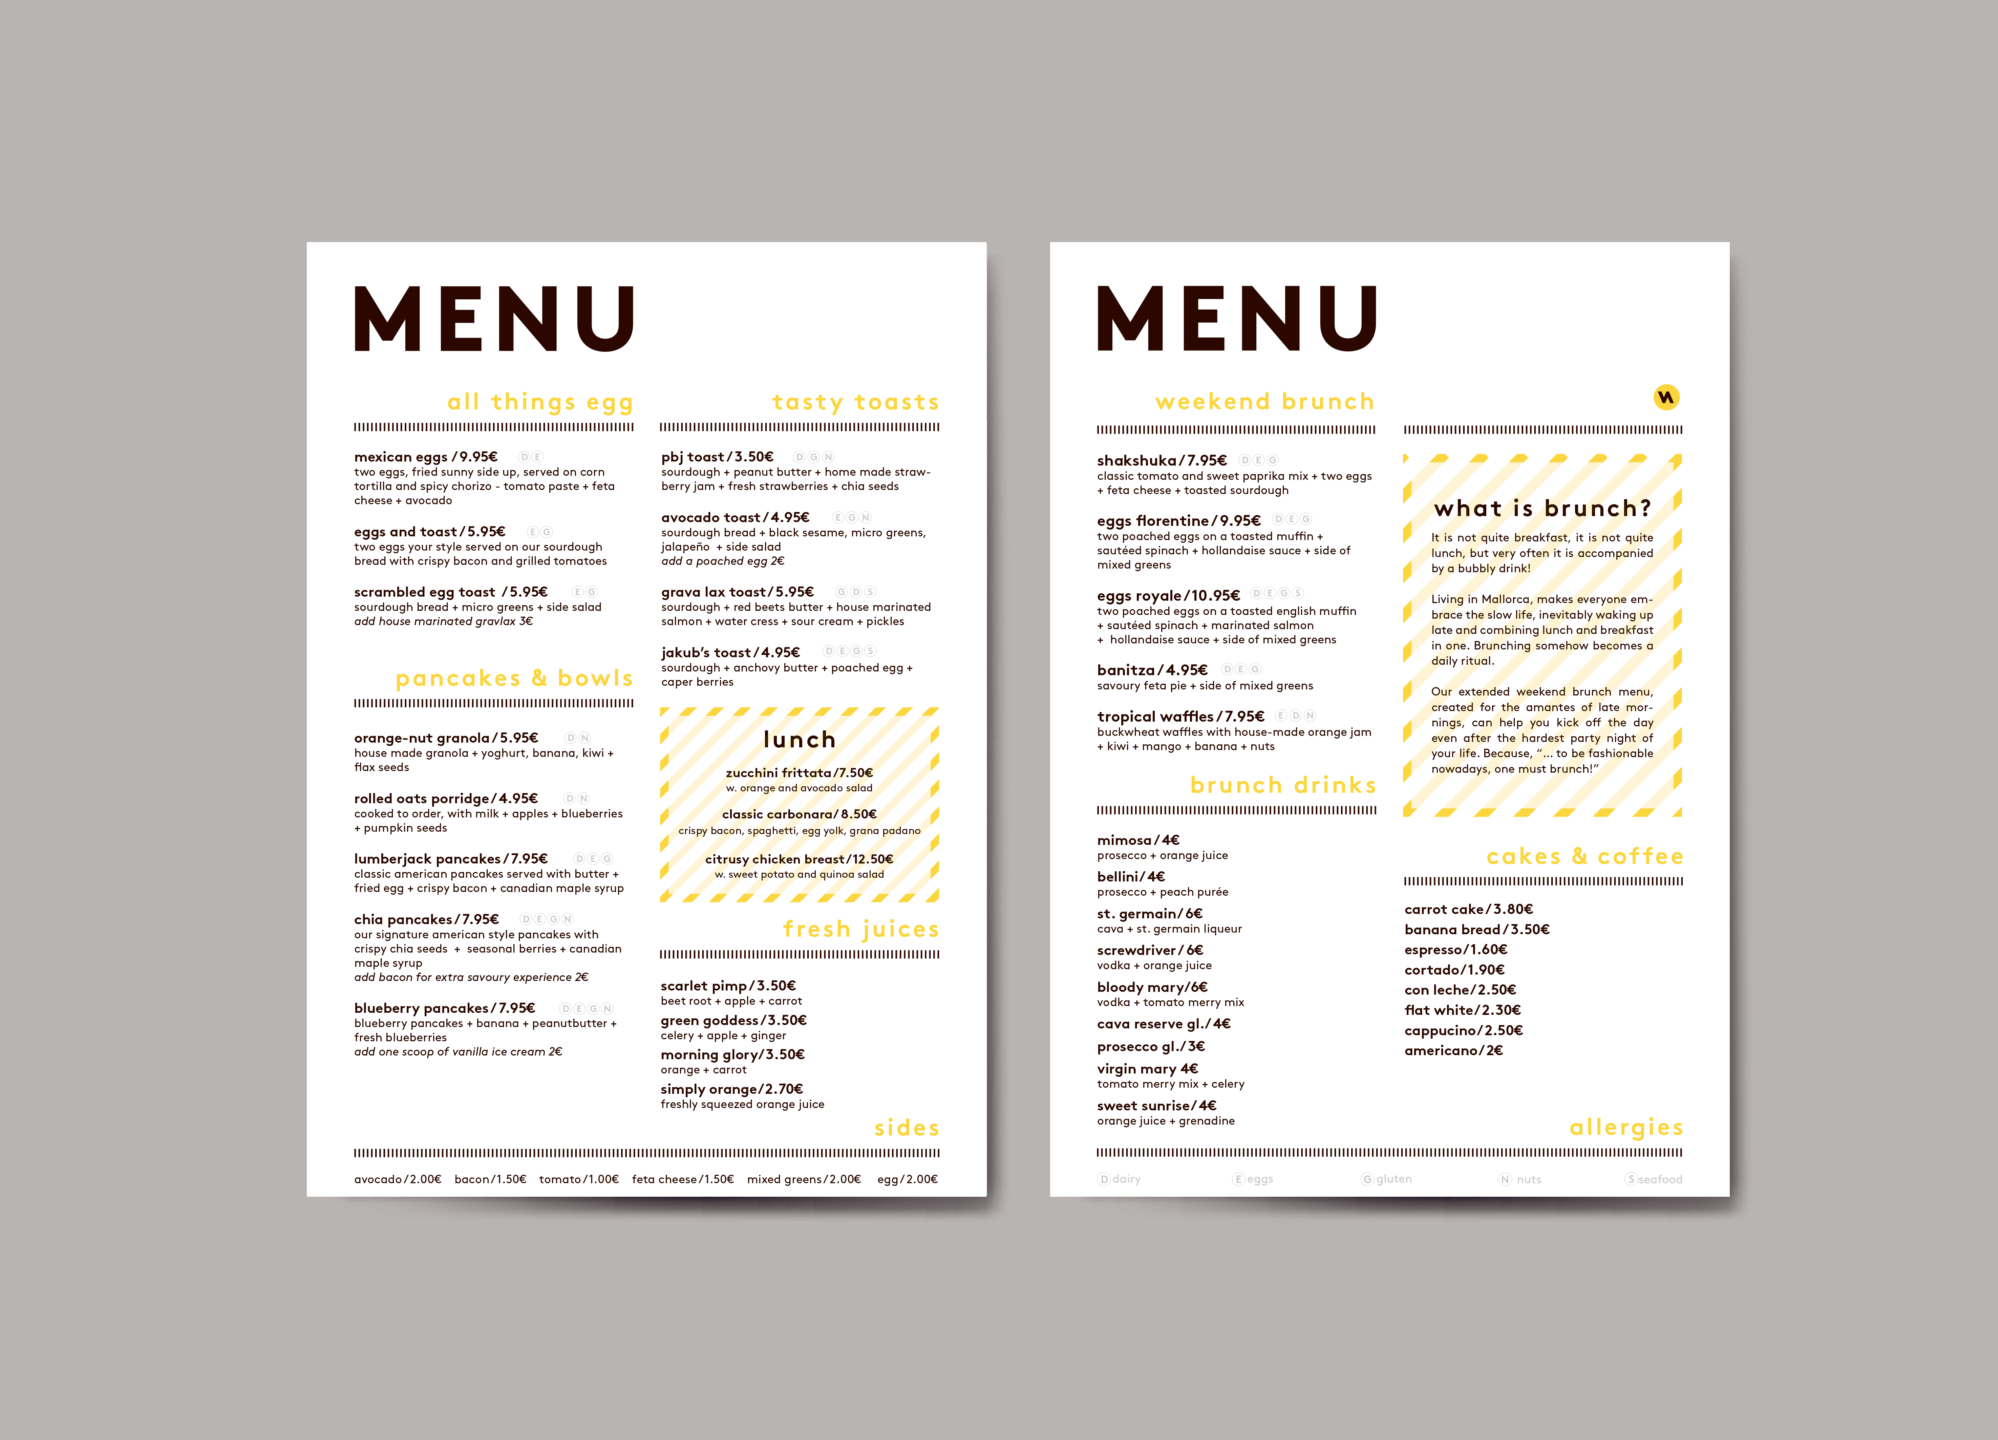 menu design, grafisk design, graphic design, visuel identitet, visual identity, branding